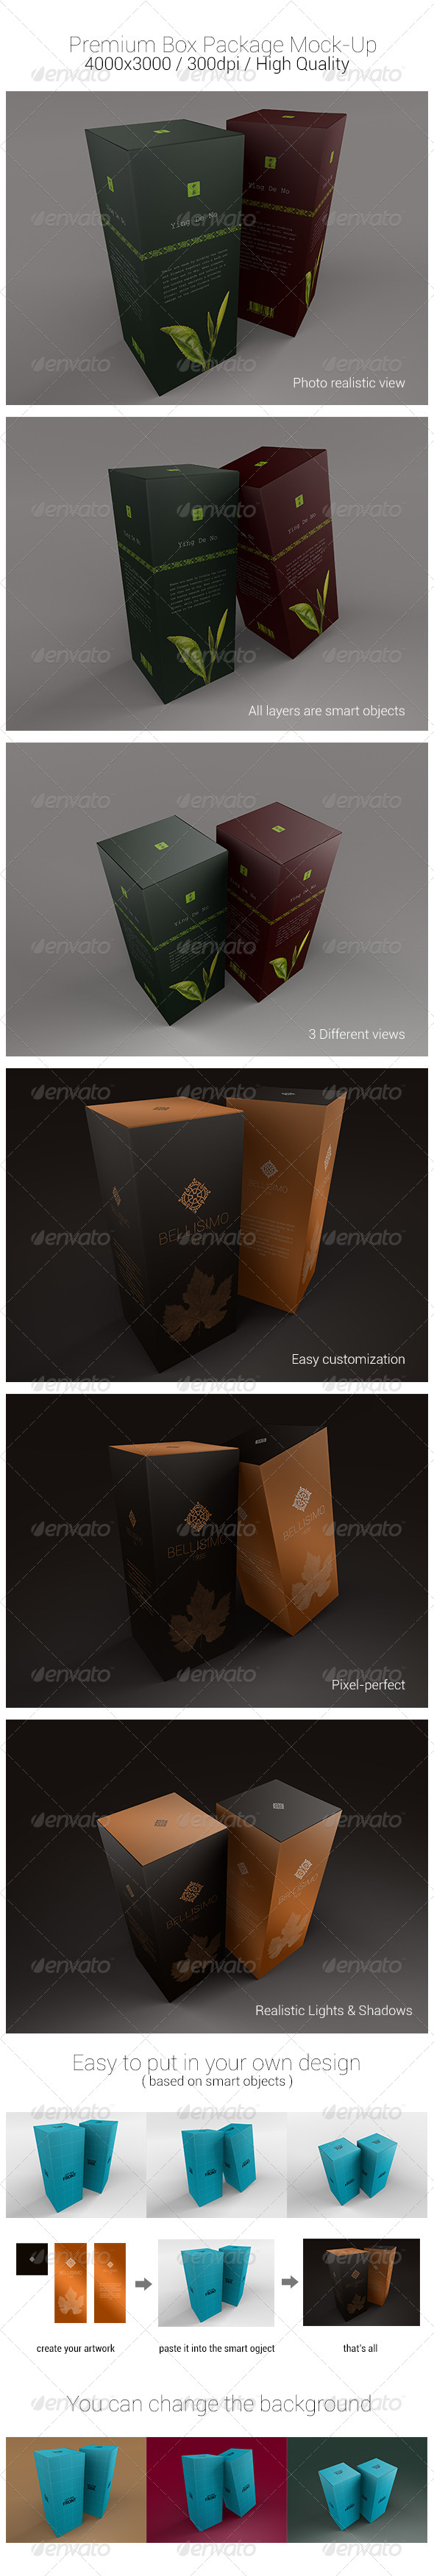 Premium Box Package Mock-Ups